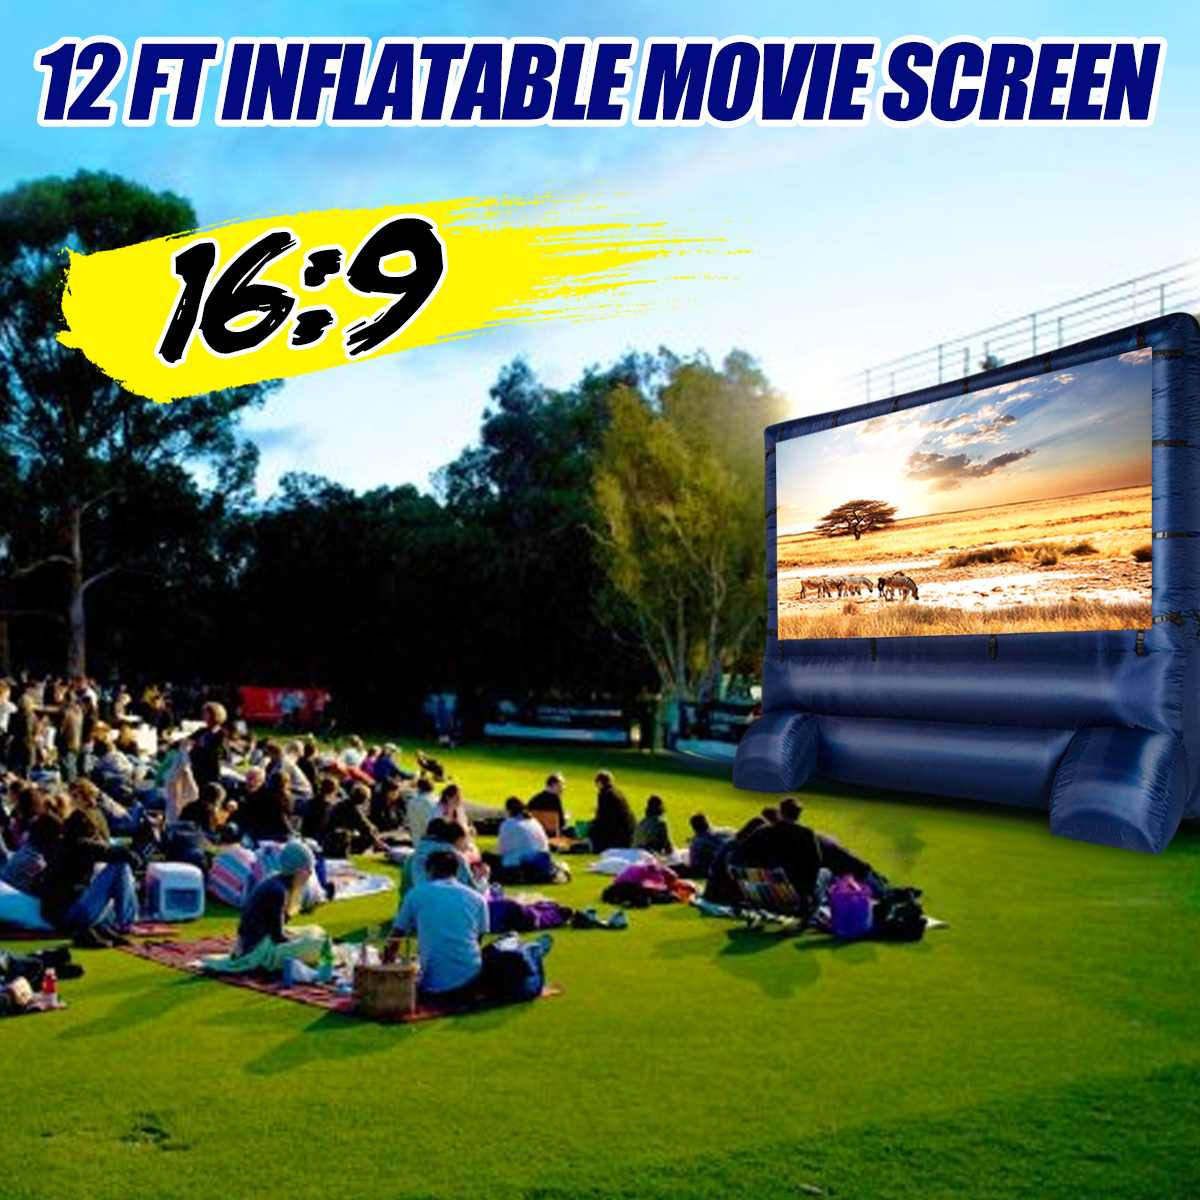 16:9 Large Screen 12 Widescreen Home Family Airblown Inflatable Movie Screen Decor Party Meeting Backyard Outdoor16:9 Large Screen 12 Widescreen Home Family Airblown Inflatable Movie Screen Decor Party Meeting Backyard Outdoor